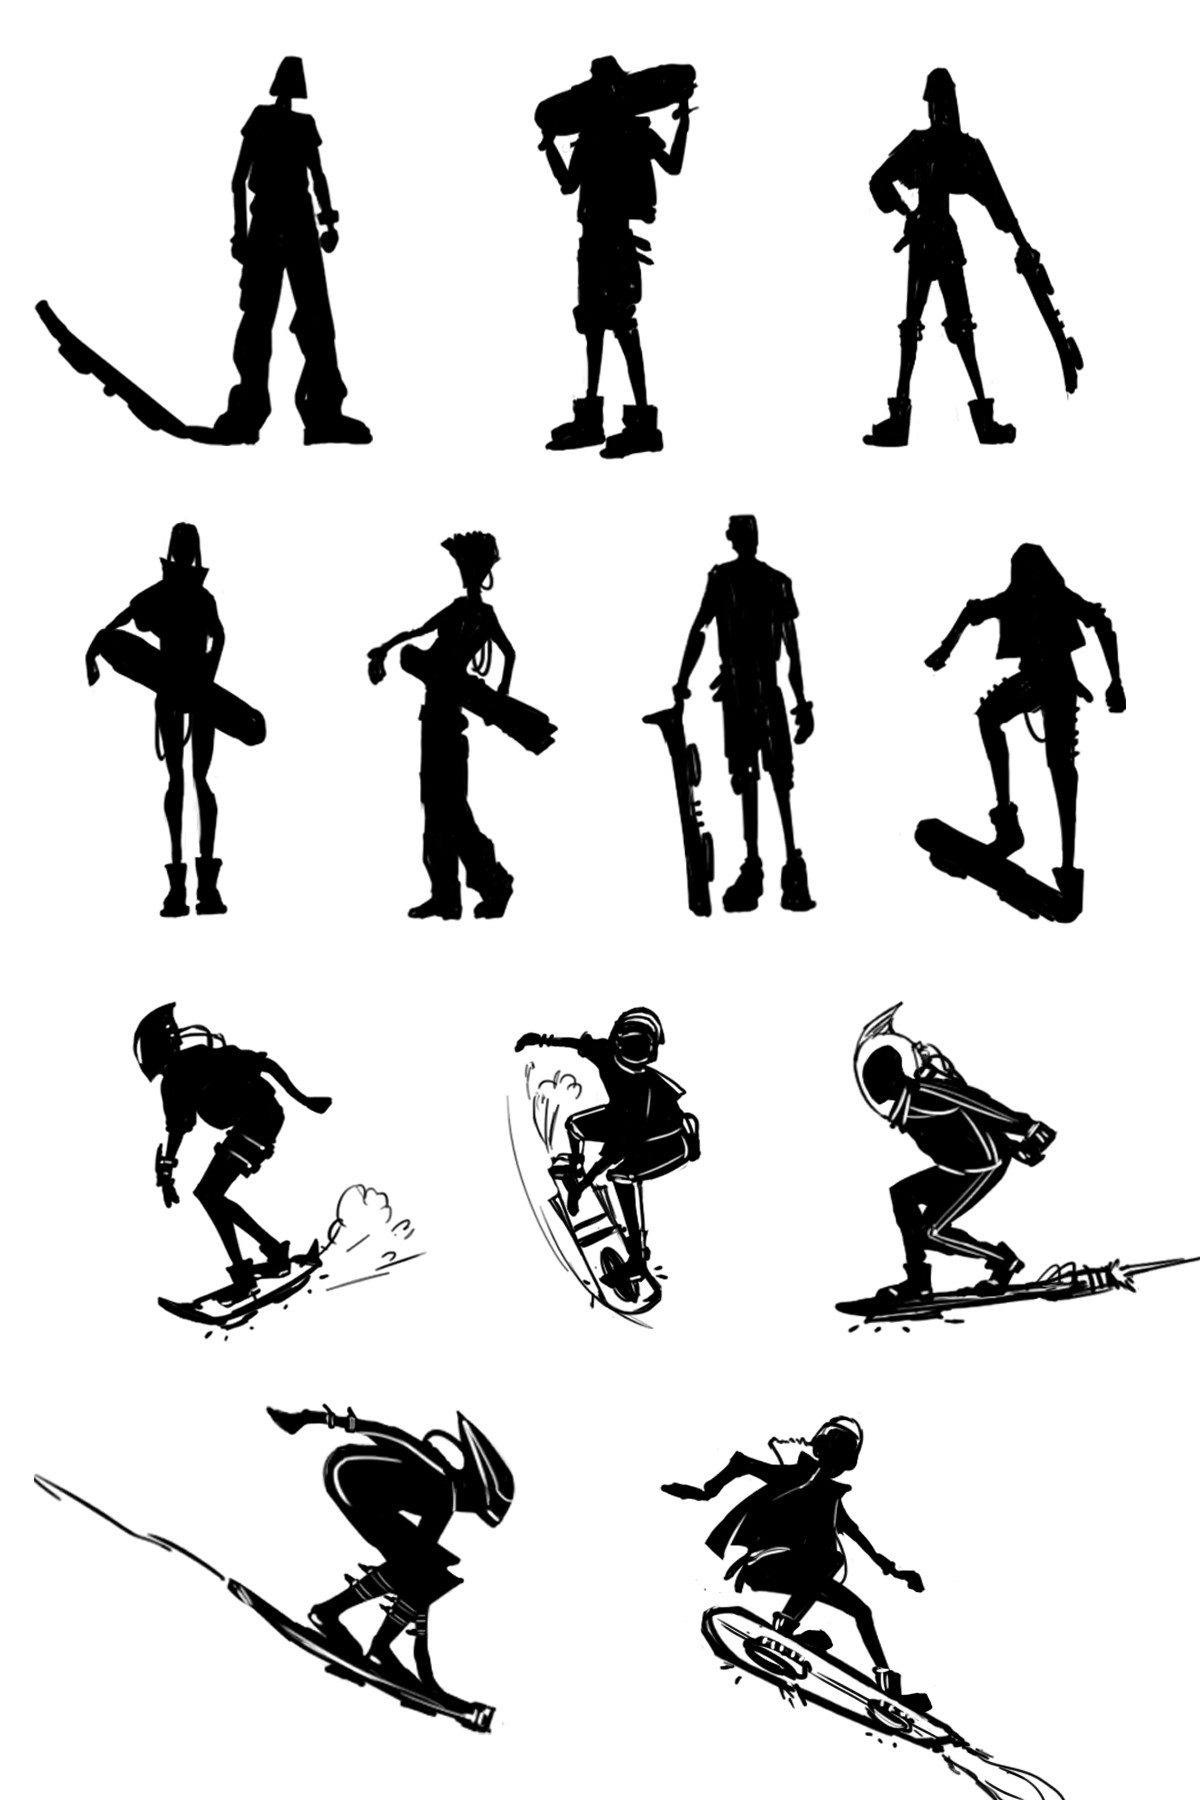 Early silhouettes